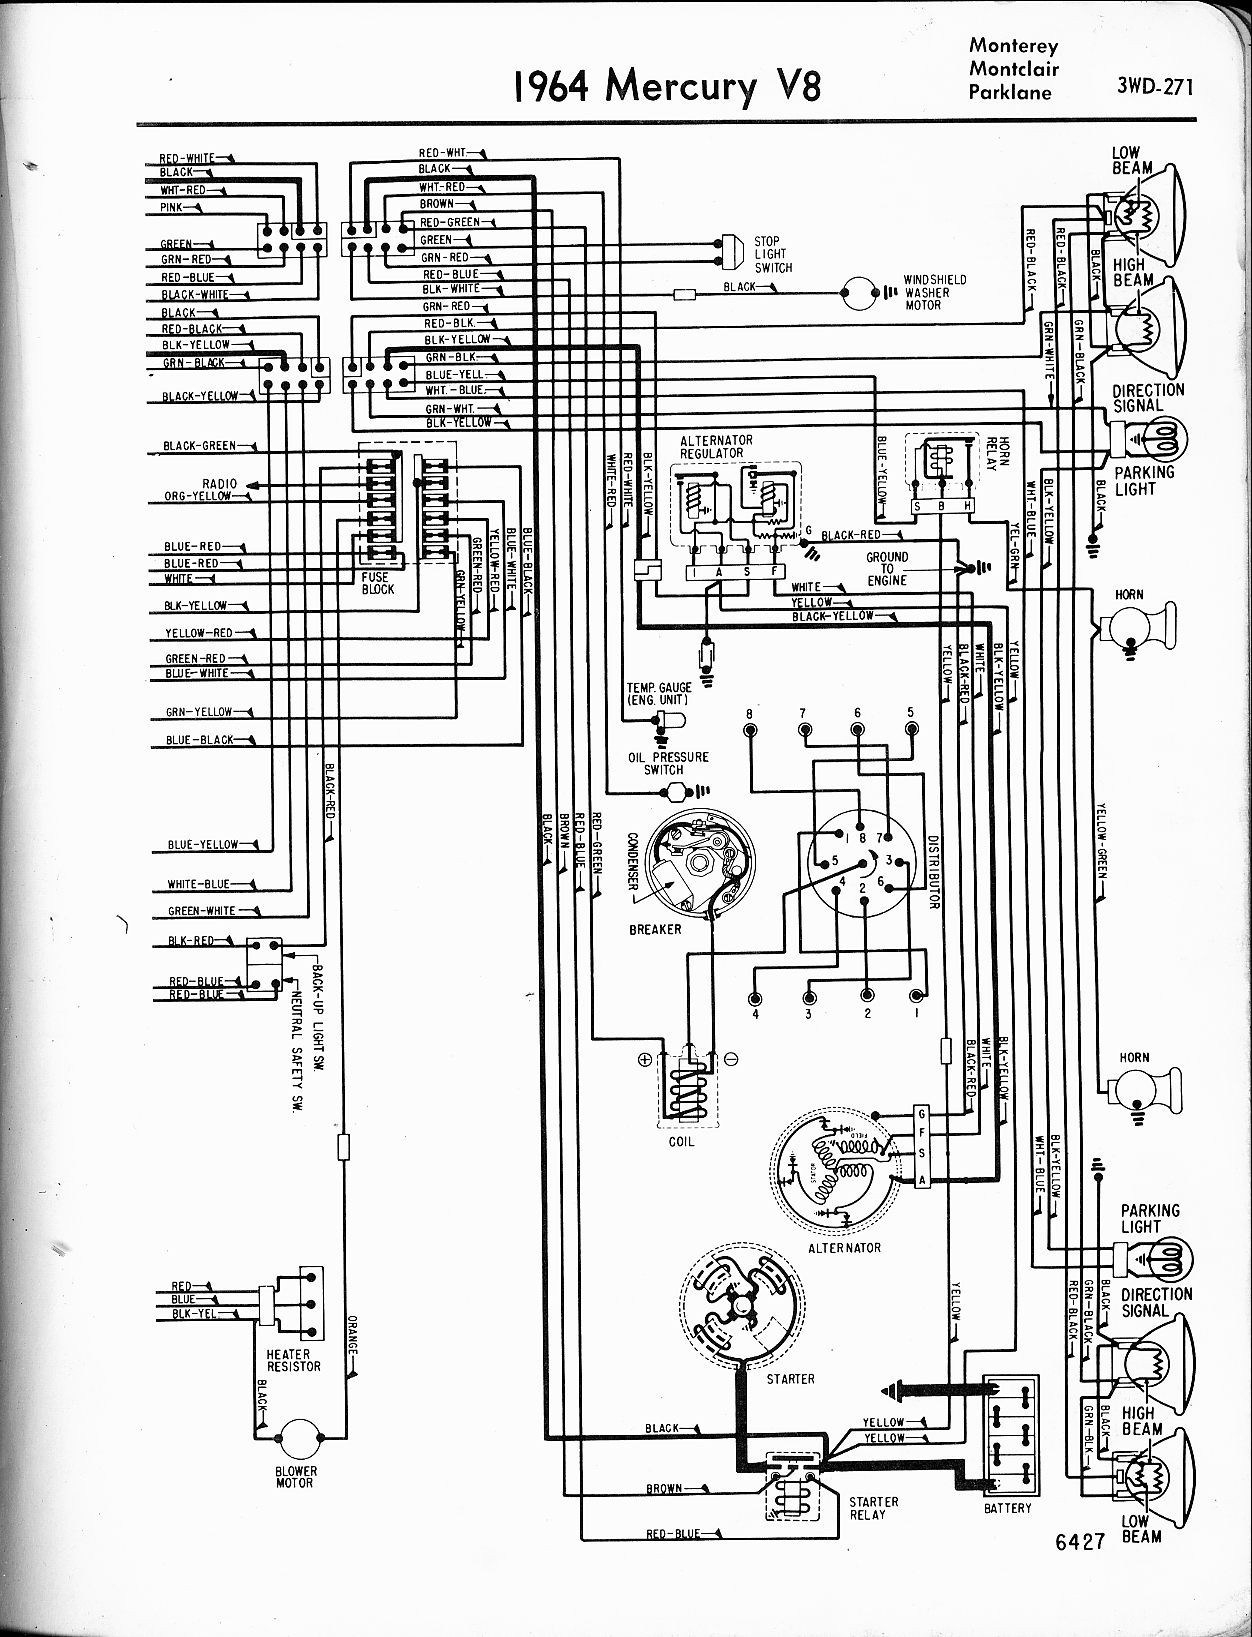 DIAGRAM] Mercury Outboard Rectifier Wiring Diagram FULL Version HD Quality Wiring  Diagram - ATQRFUSE1036.RISTORANTEPRATOVERDE.ITatqrfuse1036.ristorantepratoverde.it